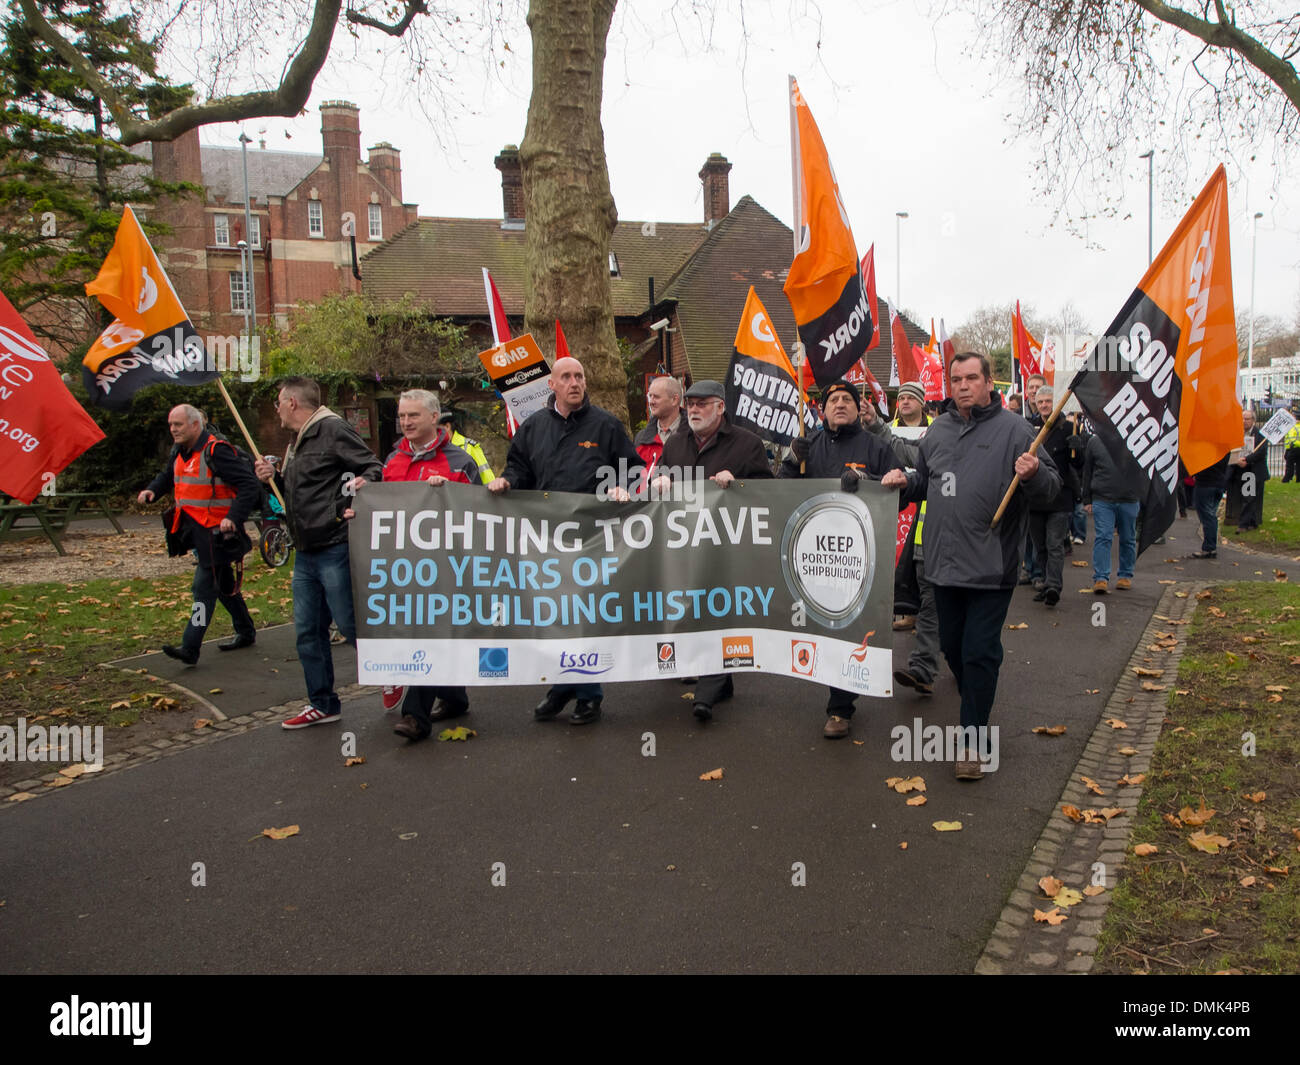 Portsmouth, UK. 14th December 2013. Hundreds of BAE workers protest against the possible closure of the BAE shipbuilding facility. Union members and workers marched through the city streets and through Victoria park to the Guildhall. Credit:  simon evans/Alamy Live News - Stock Image